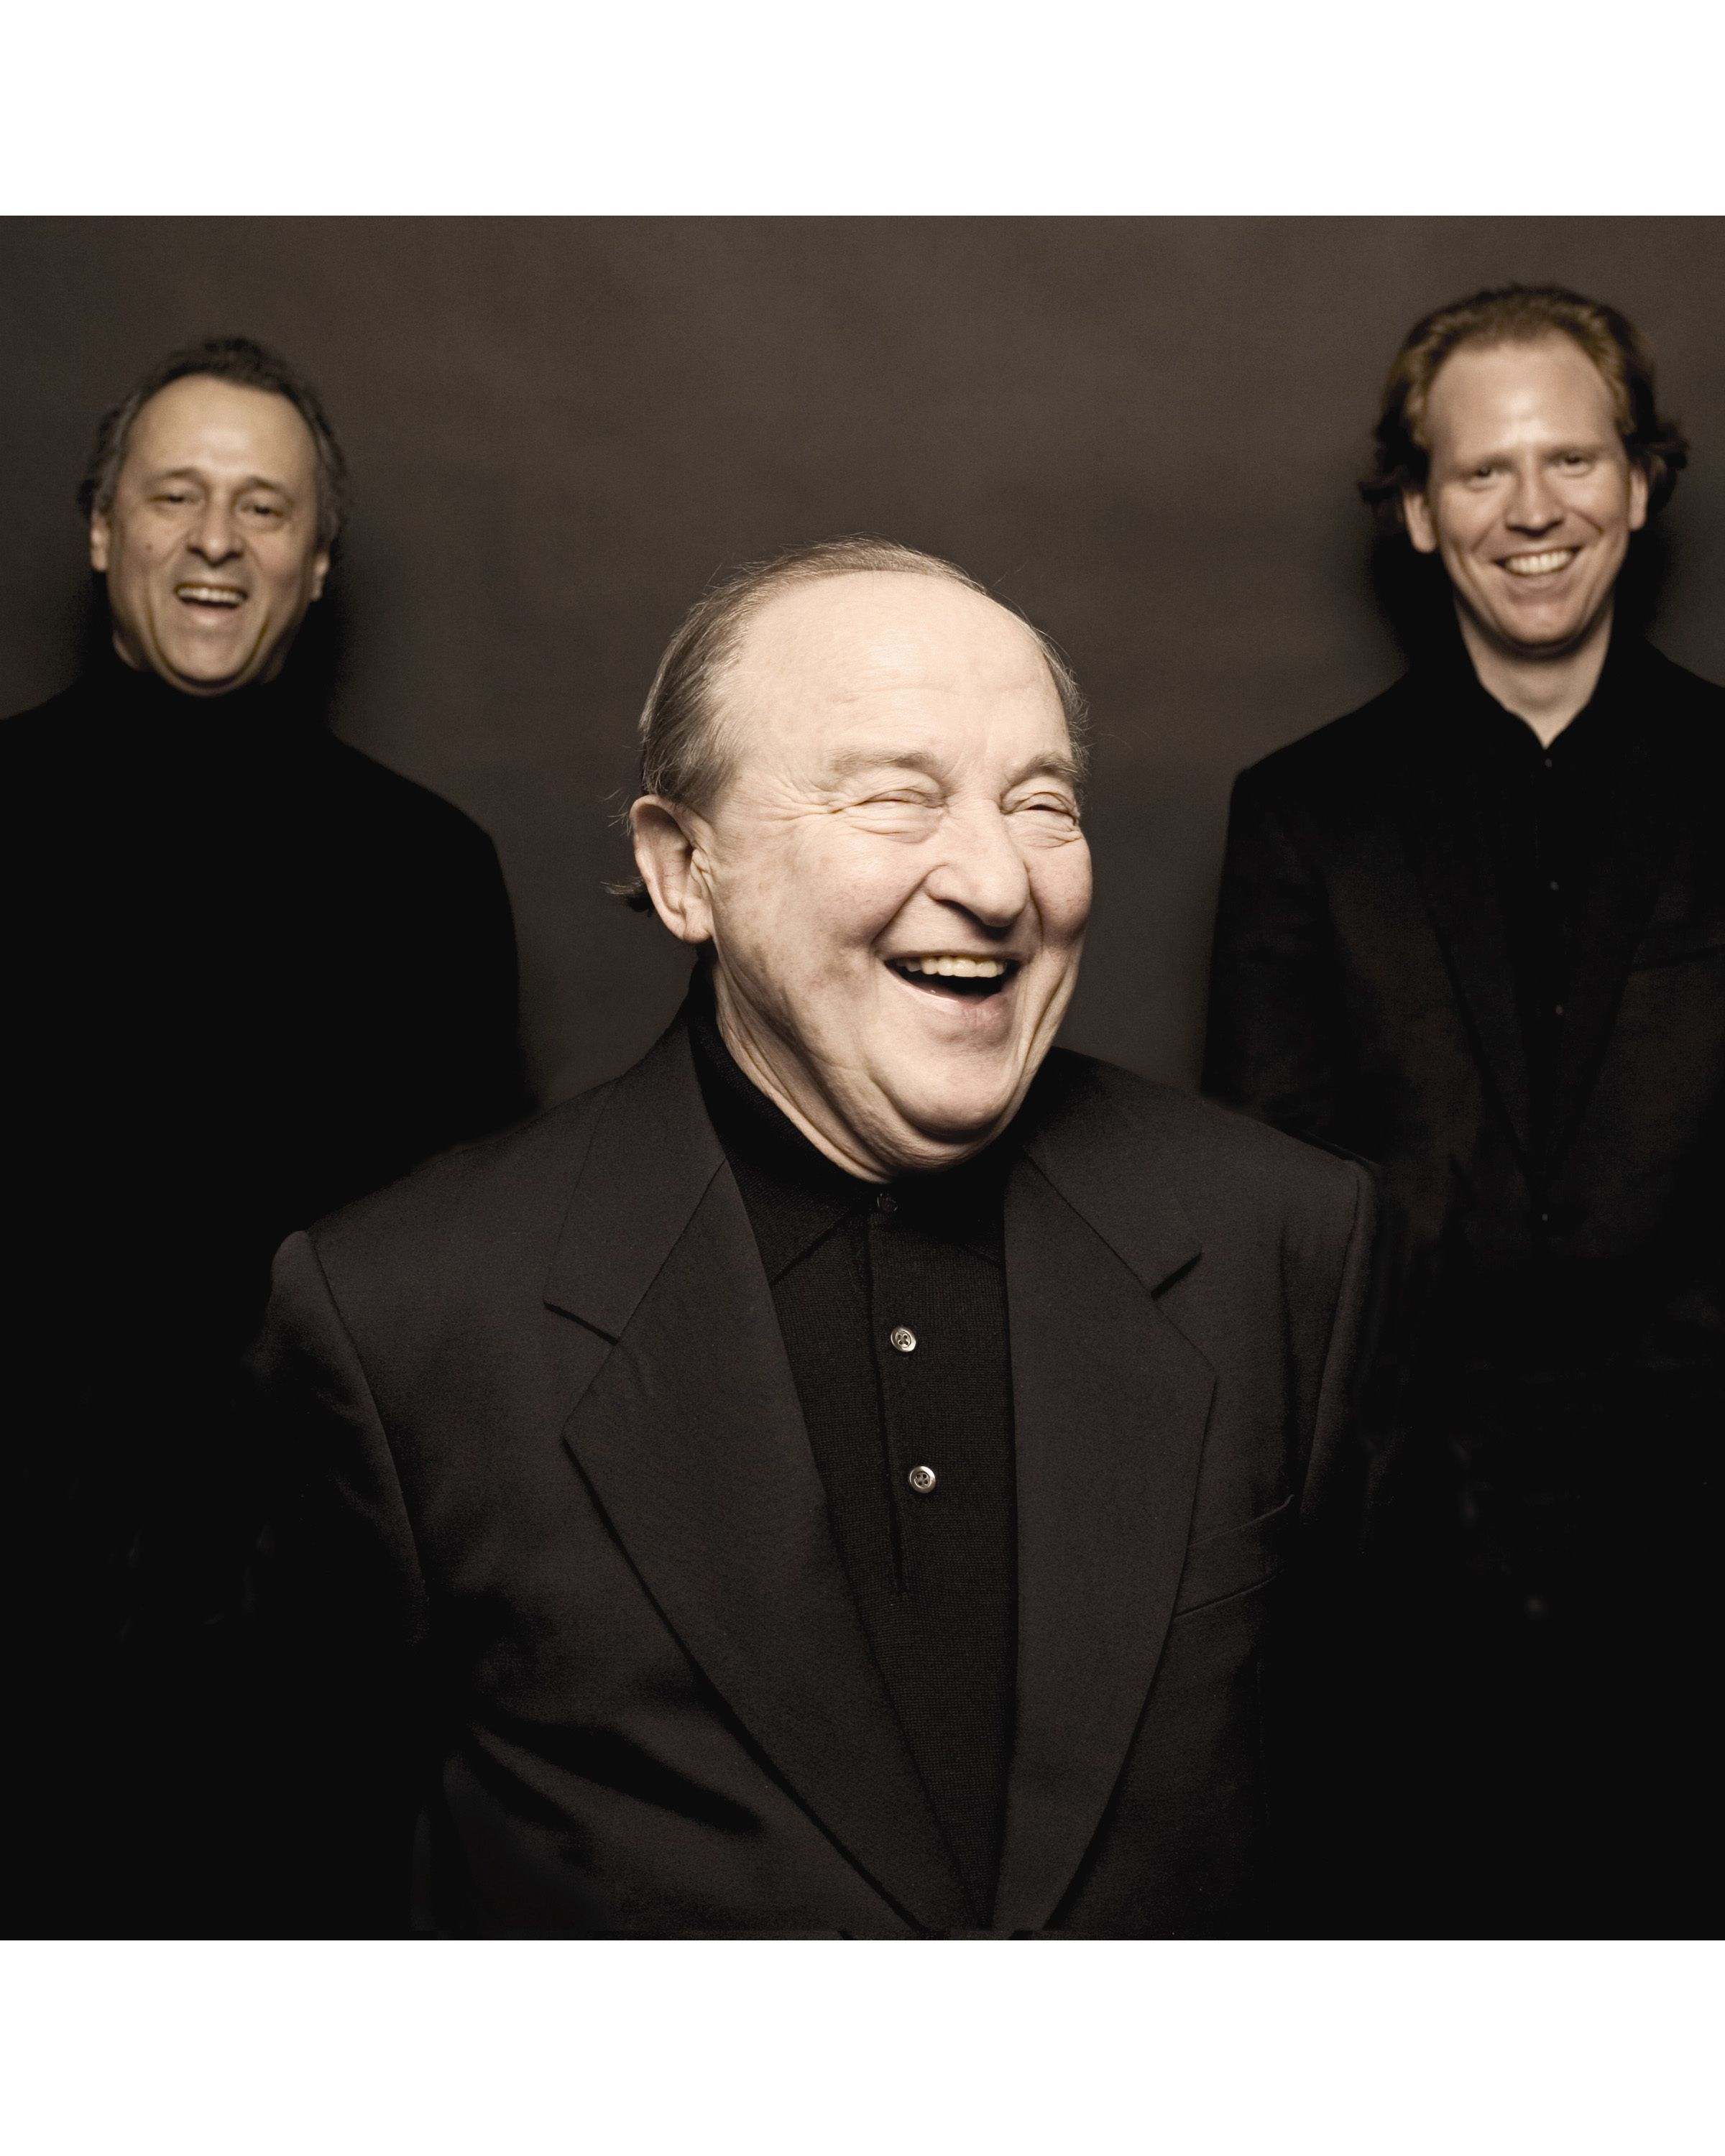 Pianist Menahem Pressler plays with BSO at 92, thanks to MGH surgery